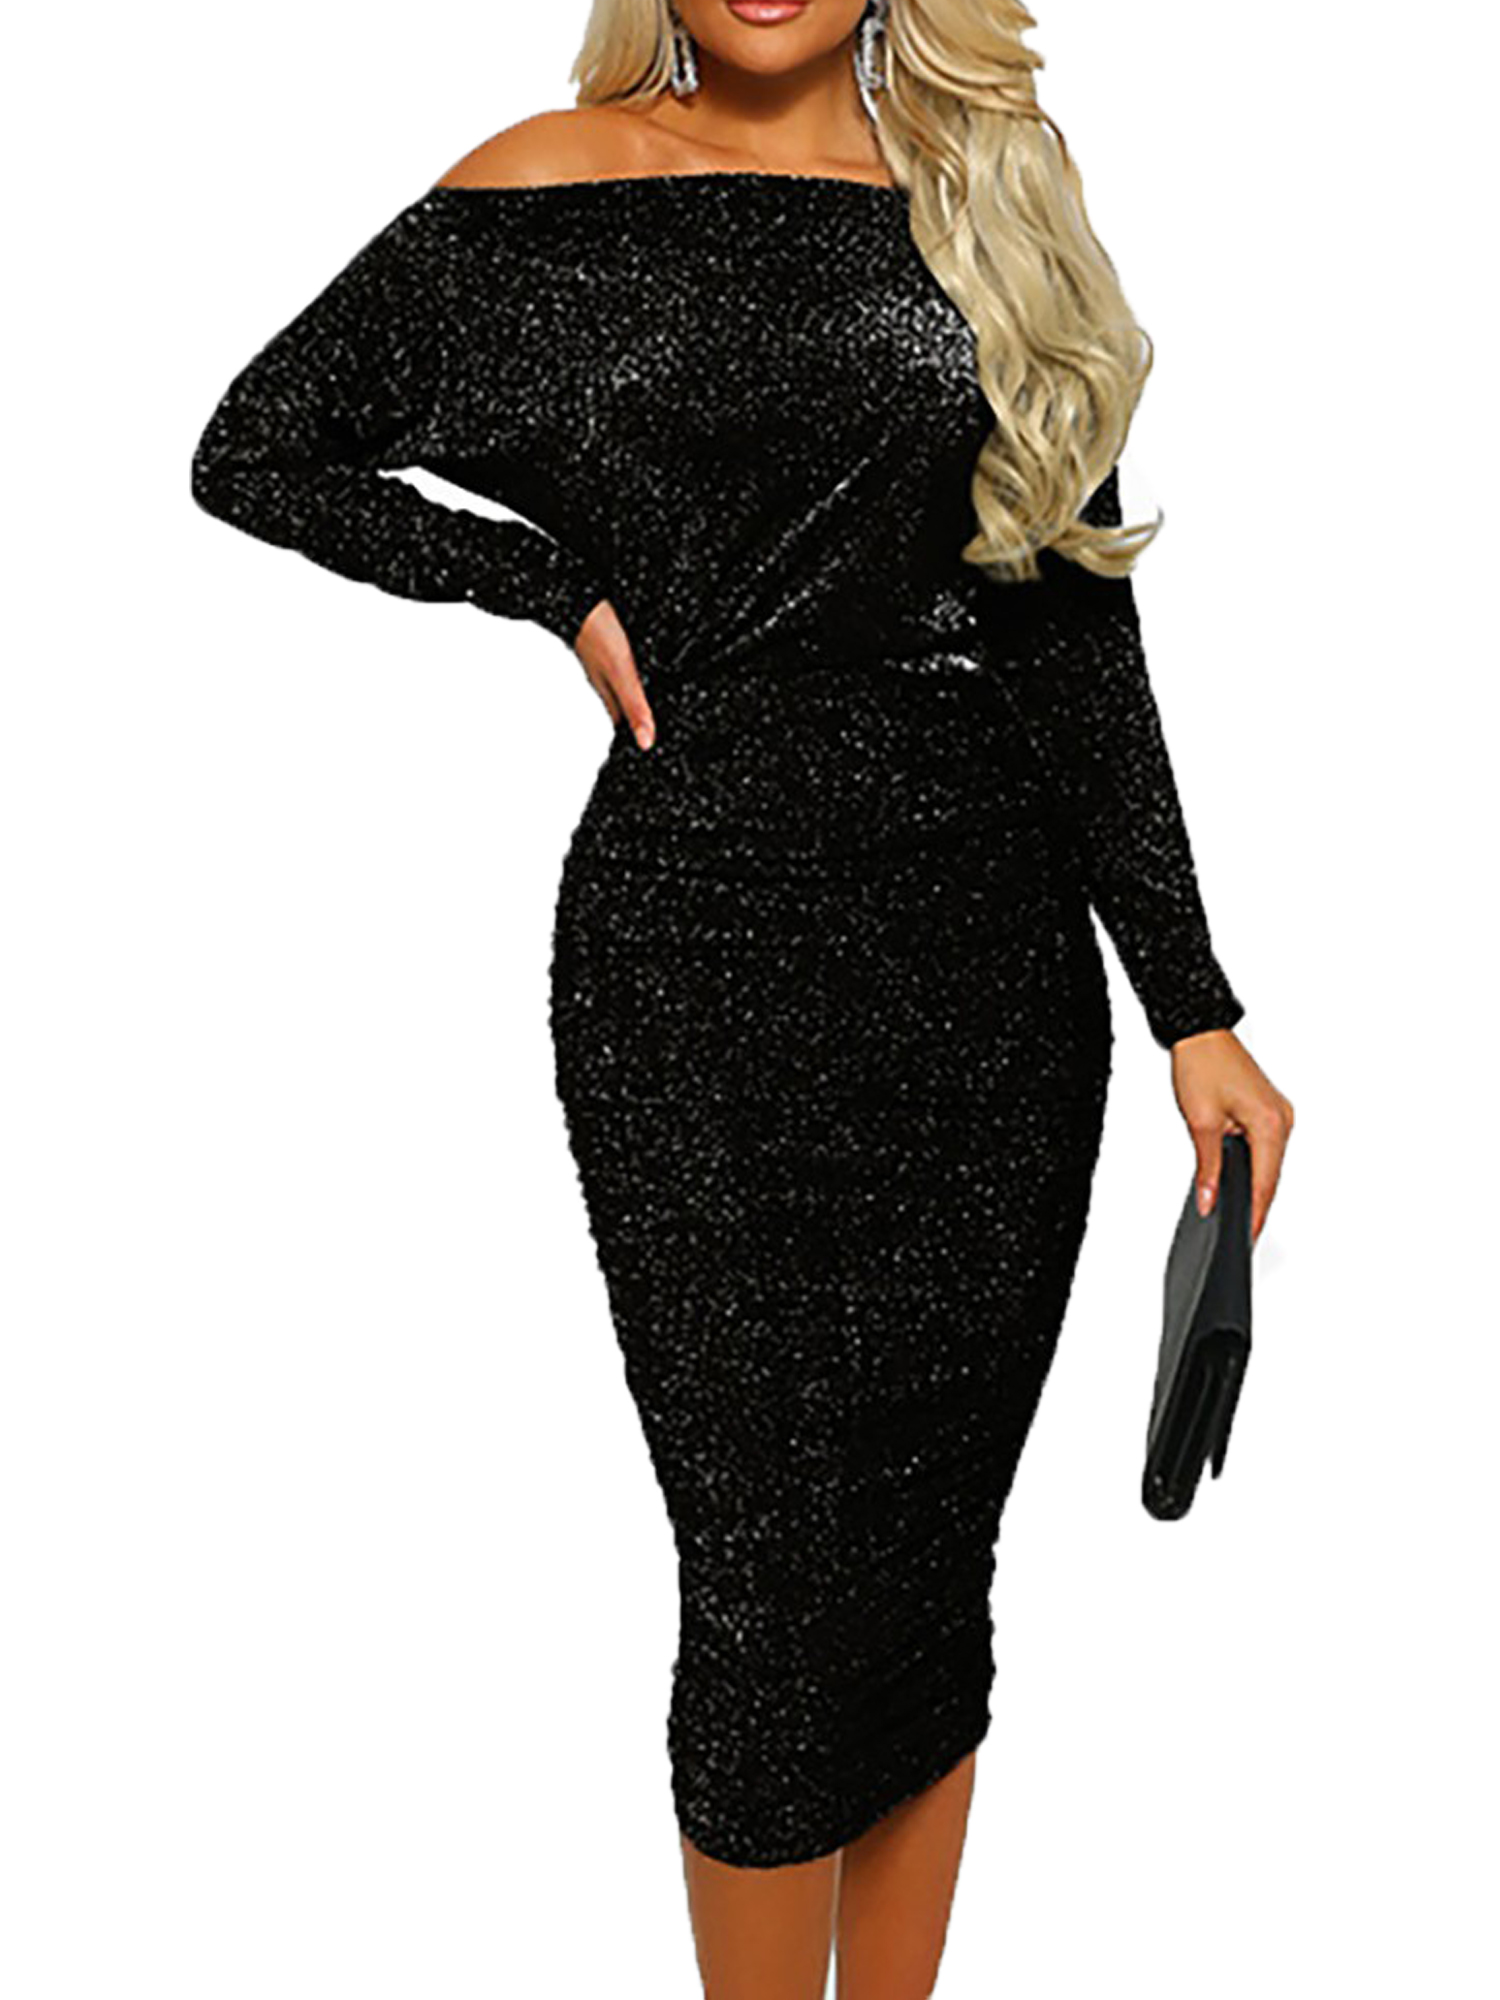 Details about  /Women Christmas Bodycon Dress Bodycon Ladies Evening Party Mini Dress Outfit